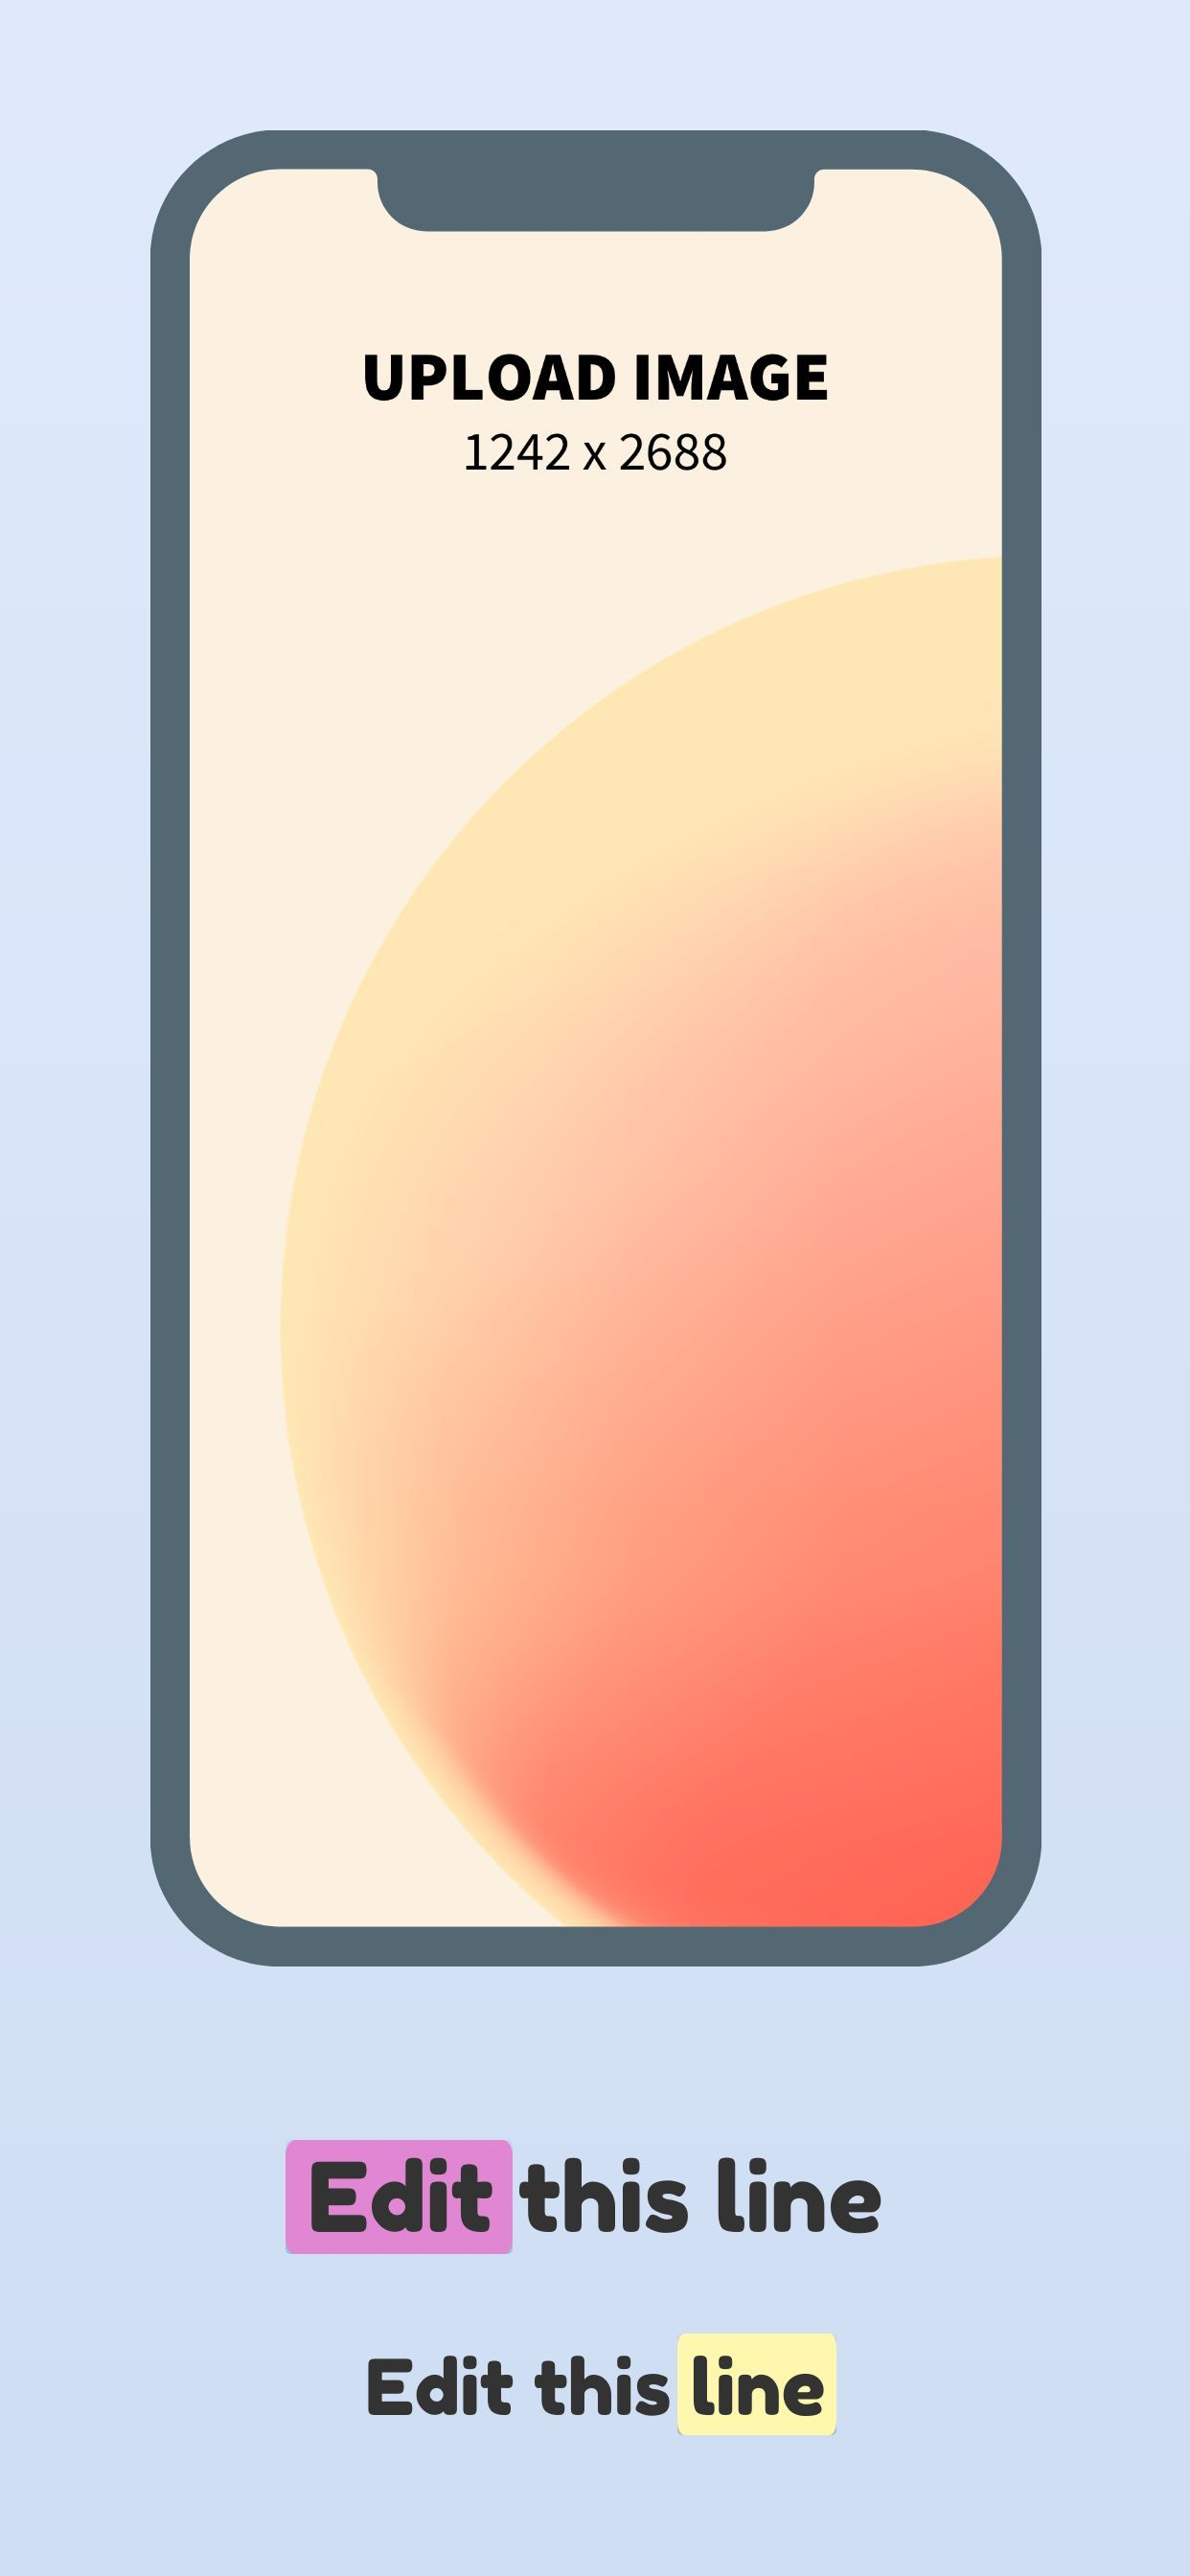 iPhone XS Max Screenshot 15 template. Quickly edit fonts, text, colors, and more for free.